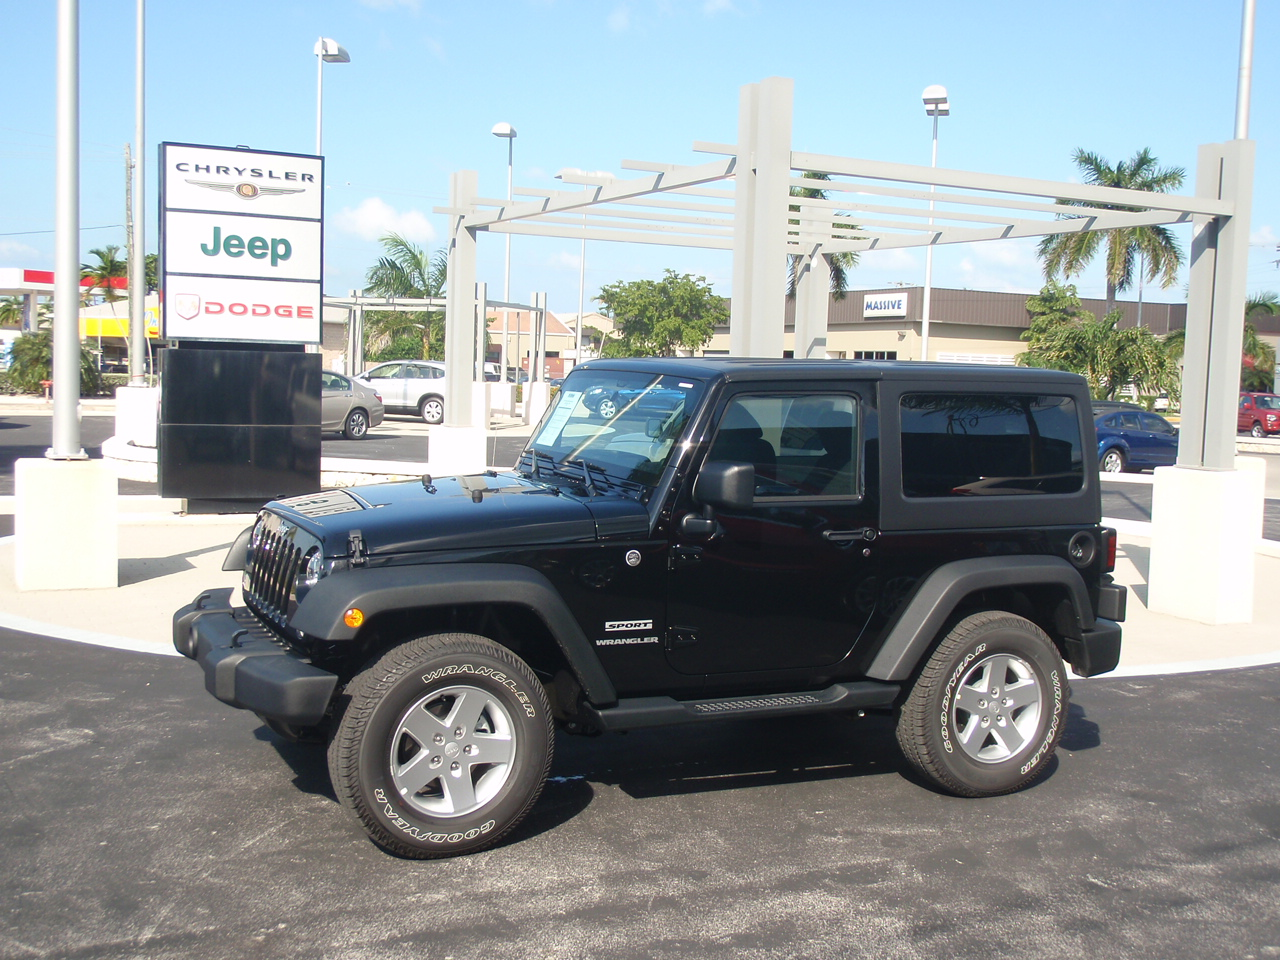 BLACK Jeep Wrangler 2 Door Hard Top 4×4 Vehicle Specifications free download image Wallpaper